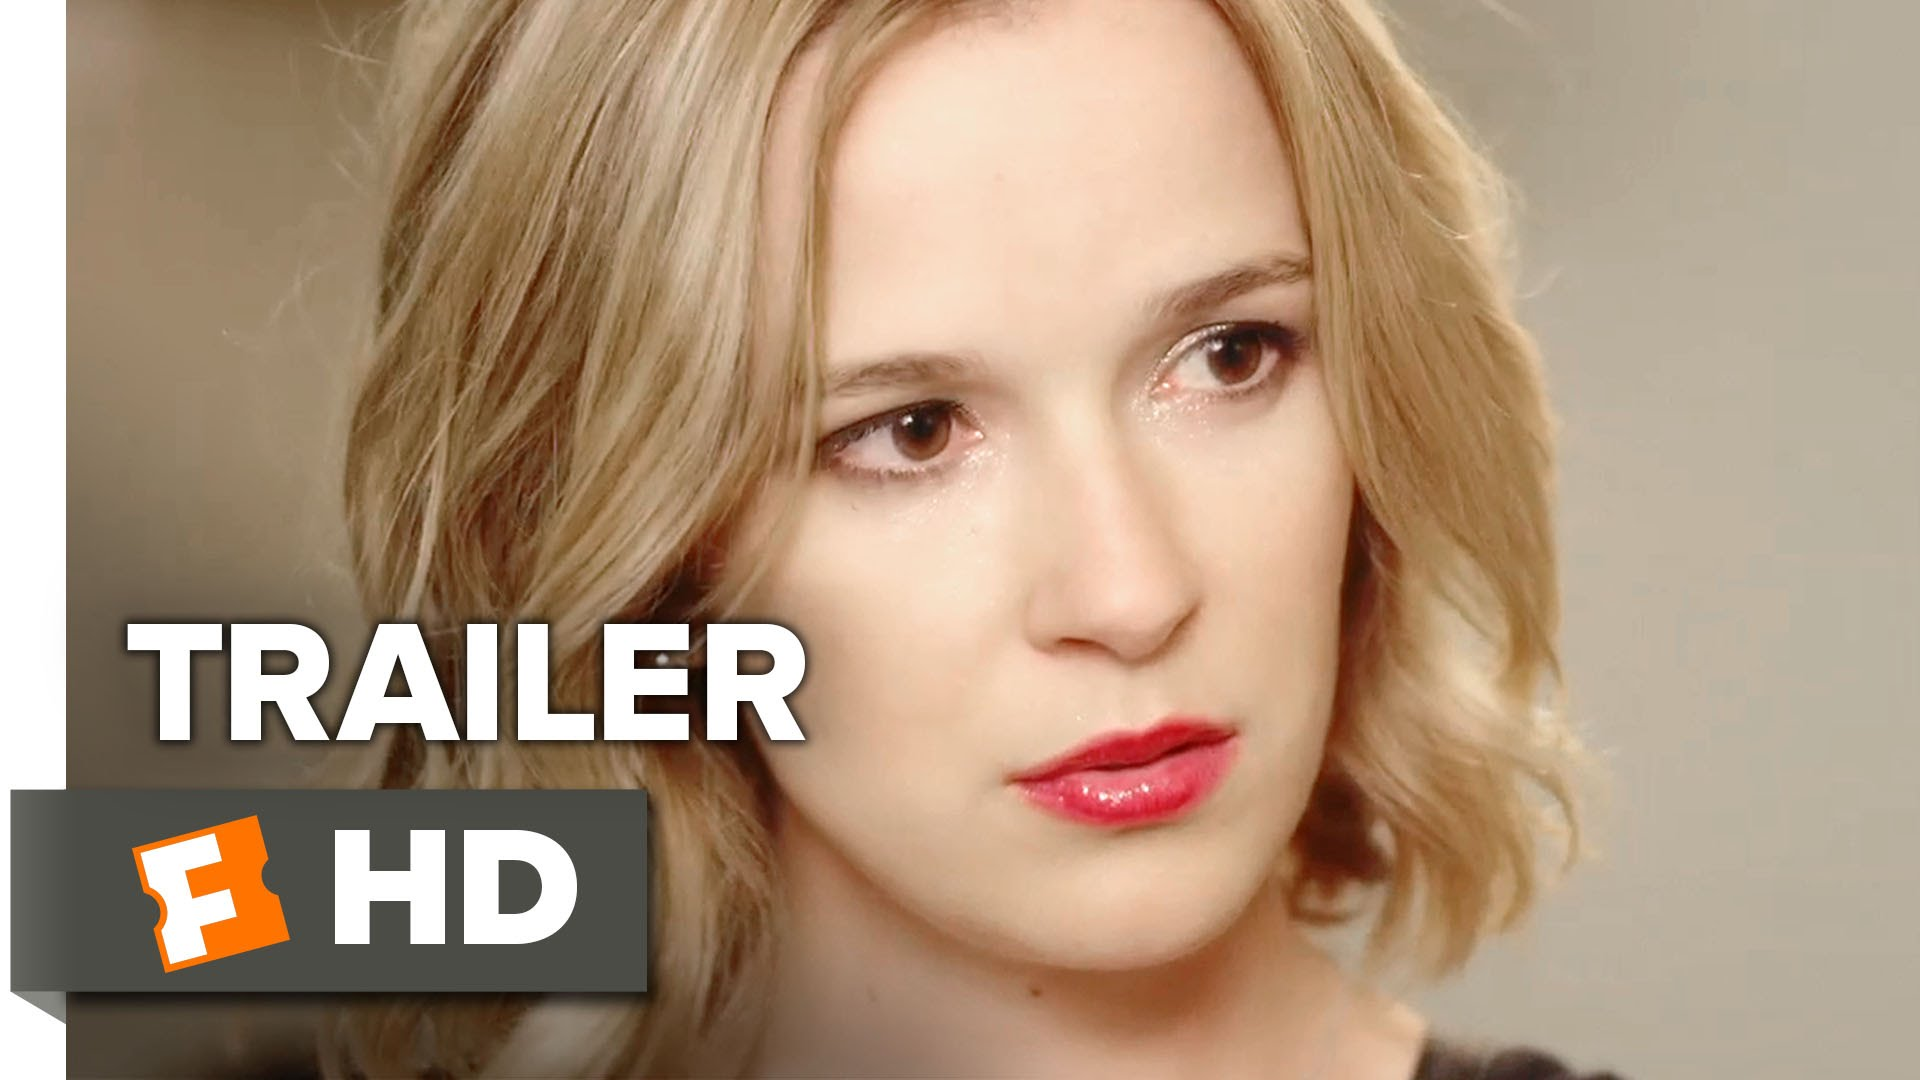 A Year and Change Official Trailer 1 (2015) - Bryan Greenberg, Claire van der Boom Drama Movie HD